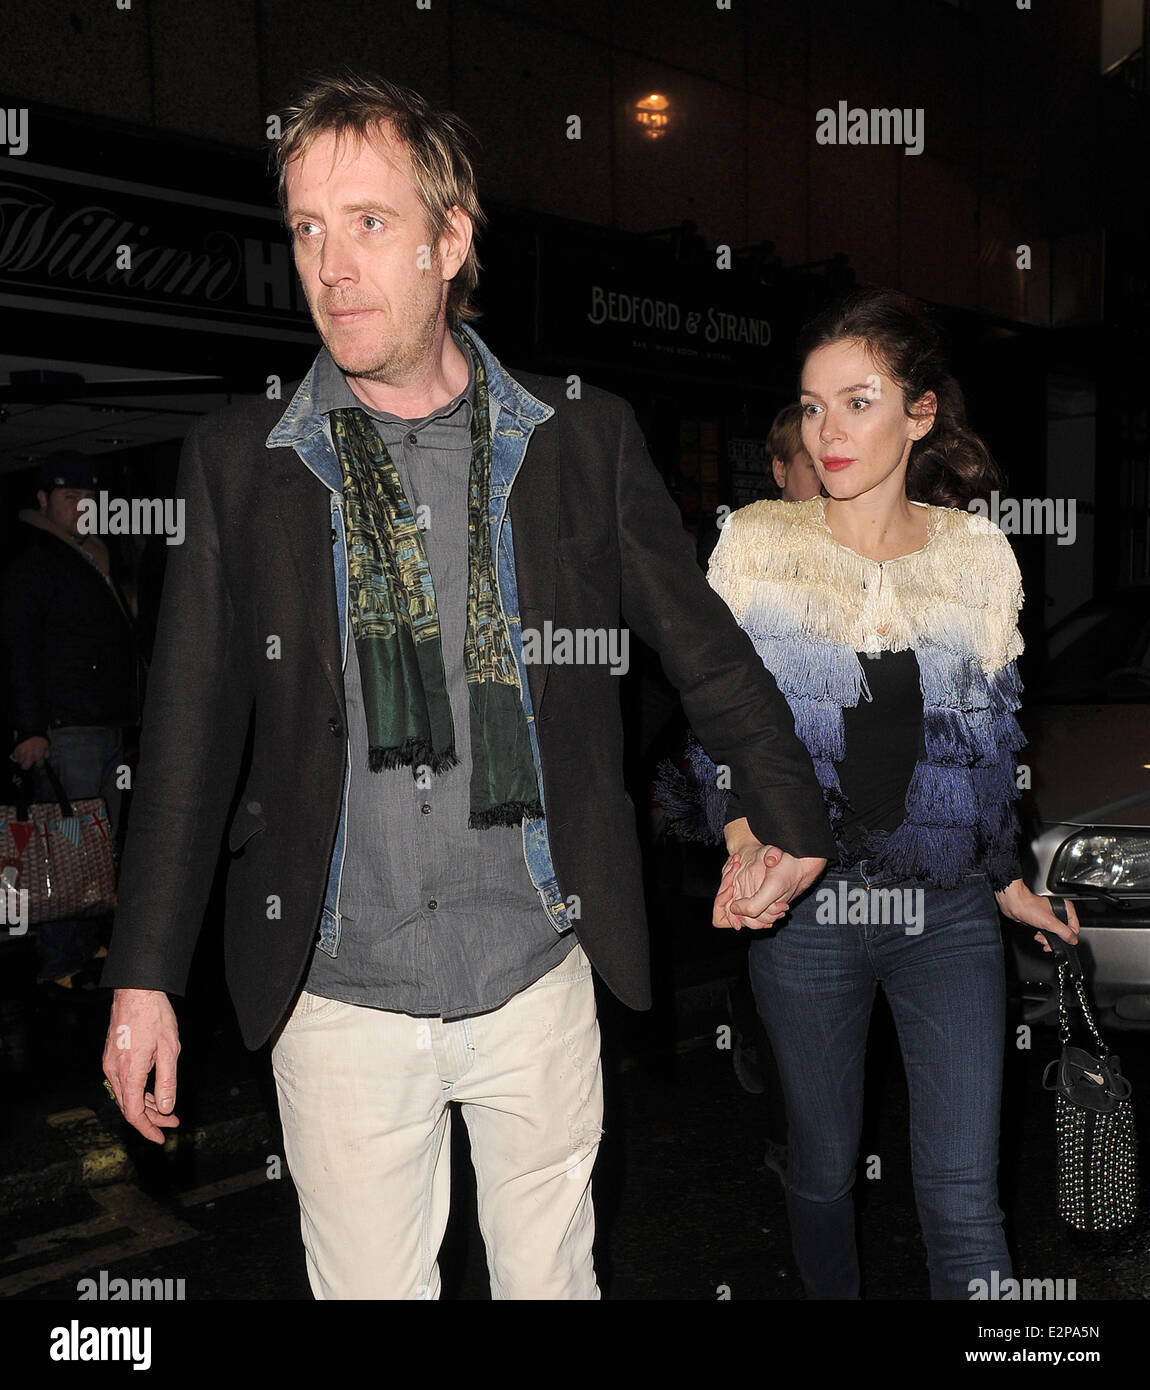 Anna Friel leaves the Bedford   Strand bar in Covent Garden with her  boyfriend Rhys Ifans at around 2am. Featuring  Anna Friel e04faf851